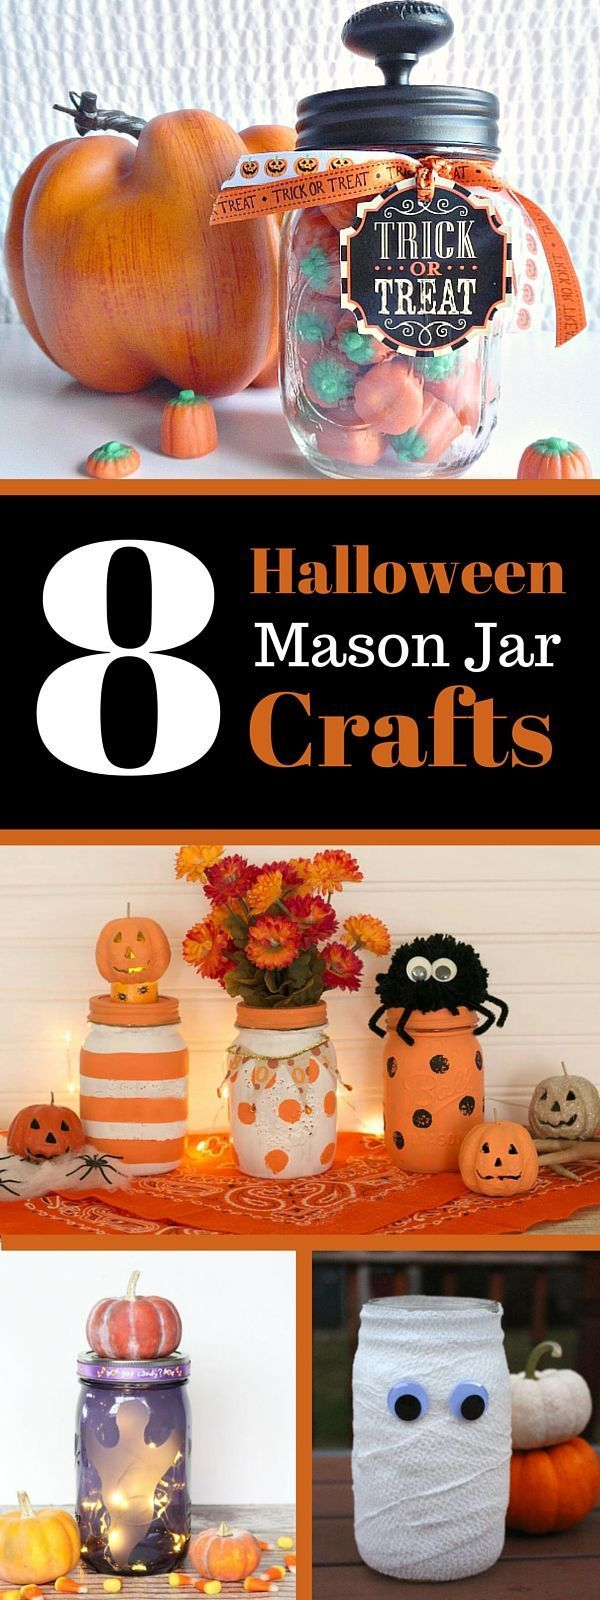 8 Halloween Mason Jar Crafts. Easy tutorial for DIY decor ideas to help your home look more festive and spooky.